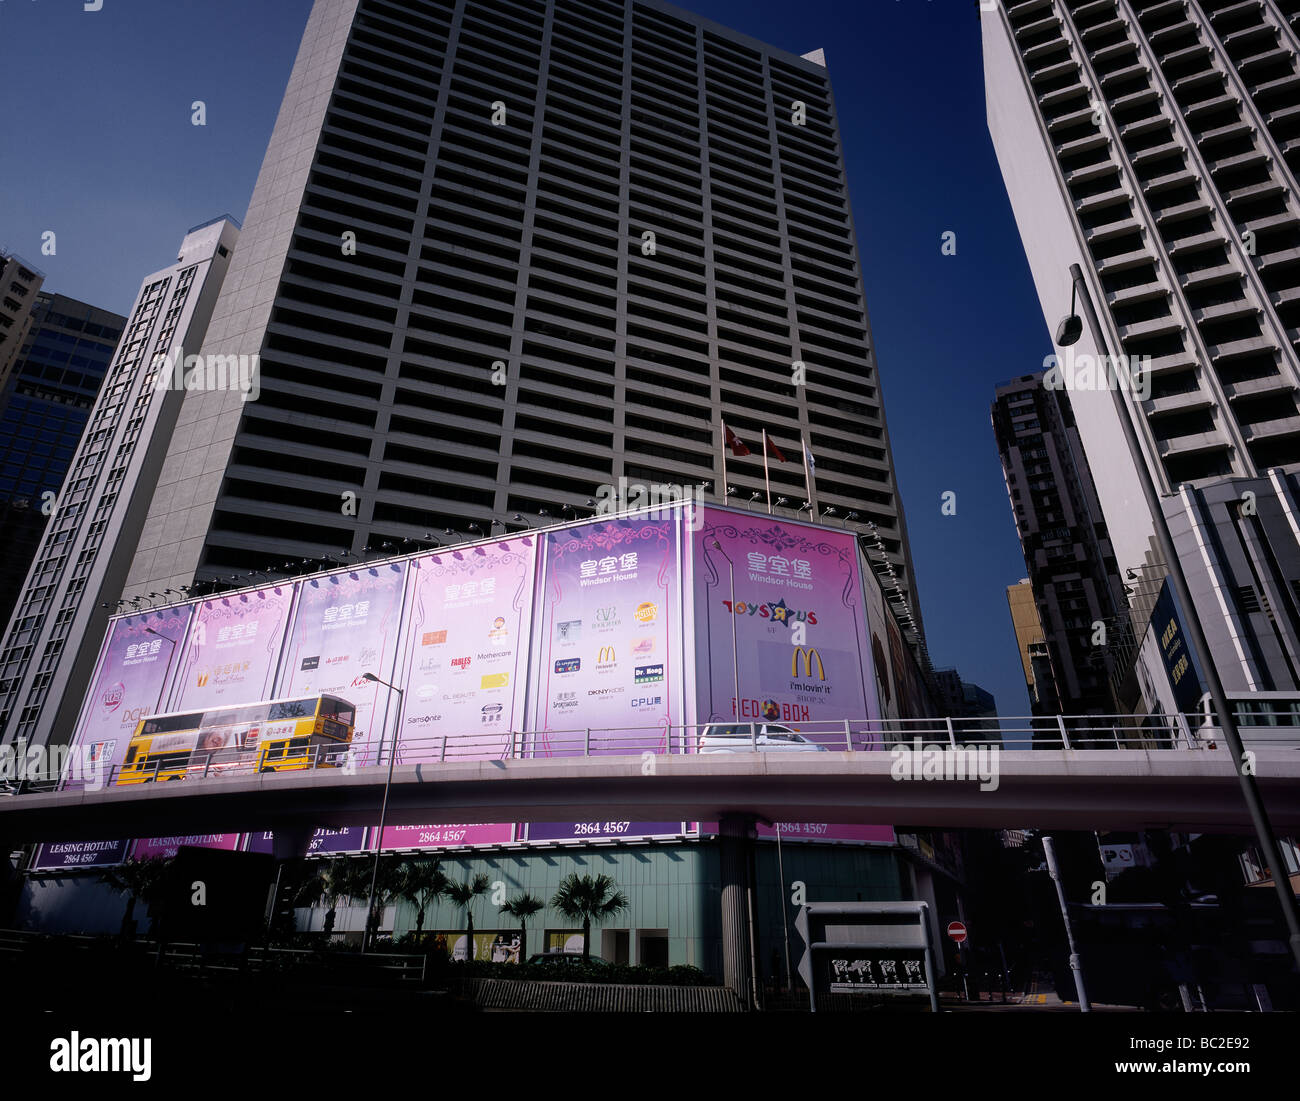 Yellow double-decker bus passing large billboards at an overpass in Hong Kong, China. - Stock Image